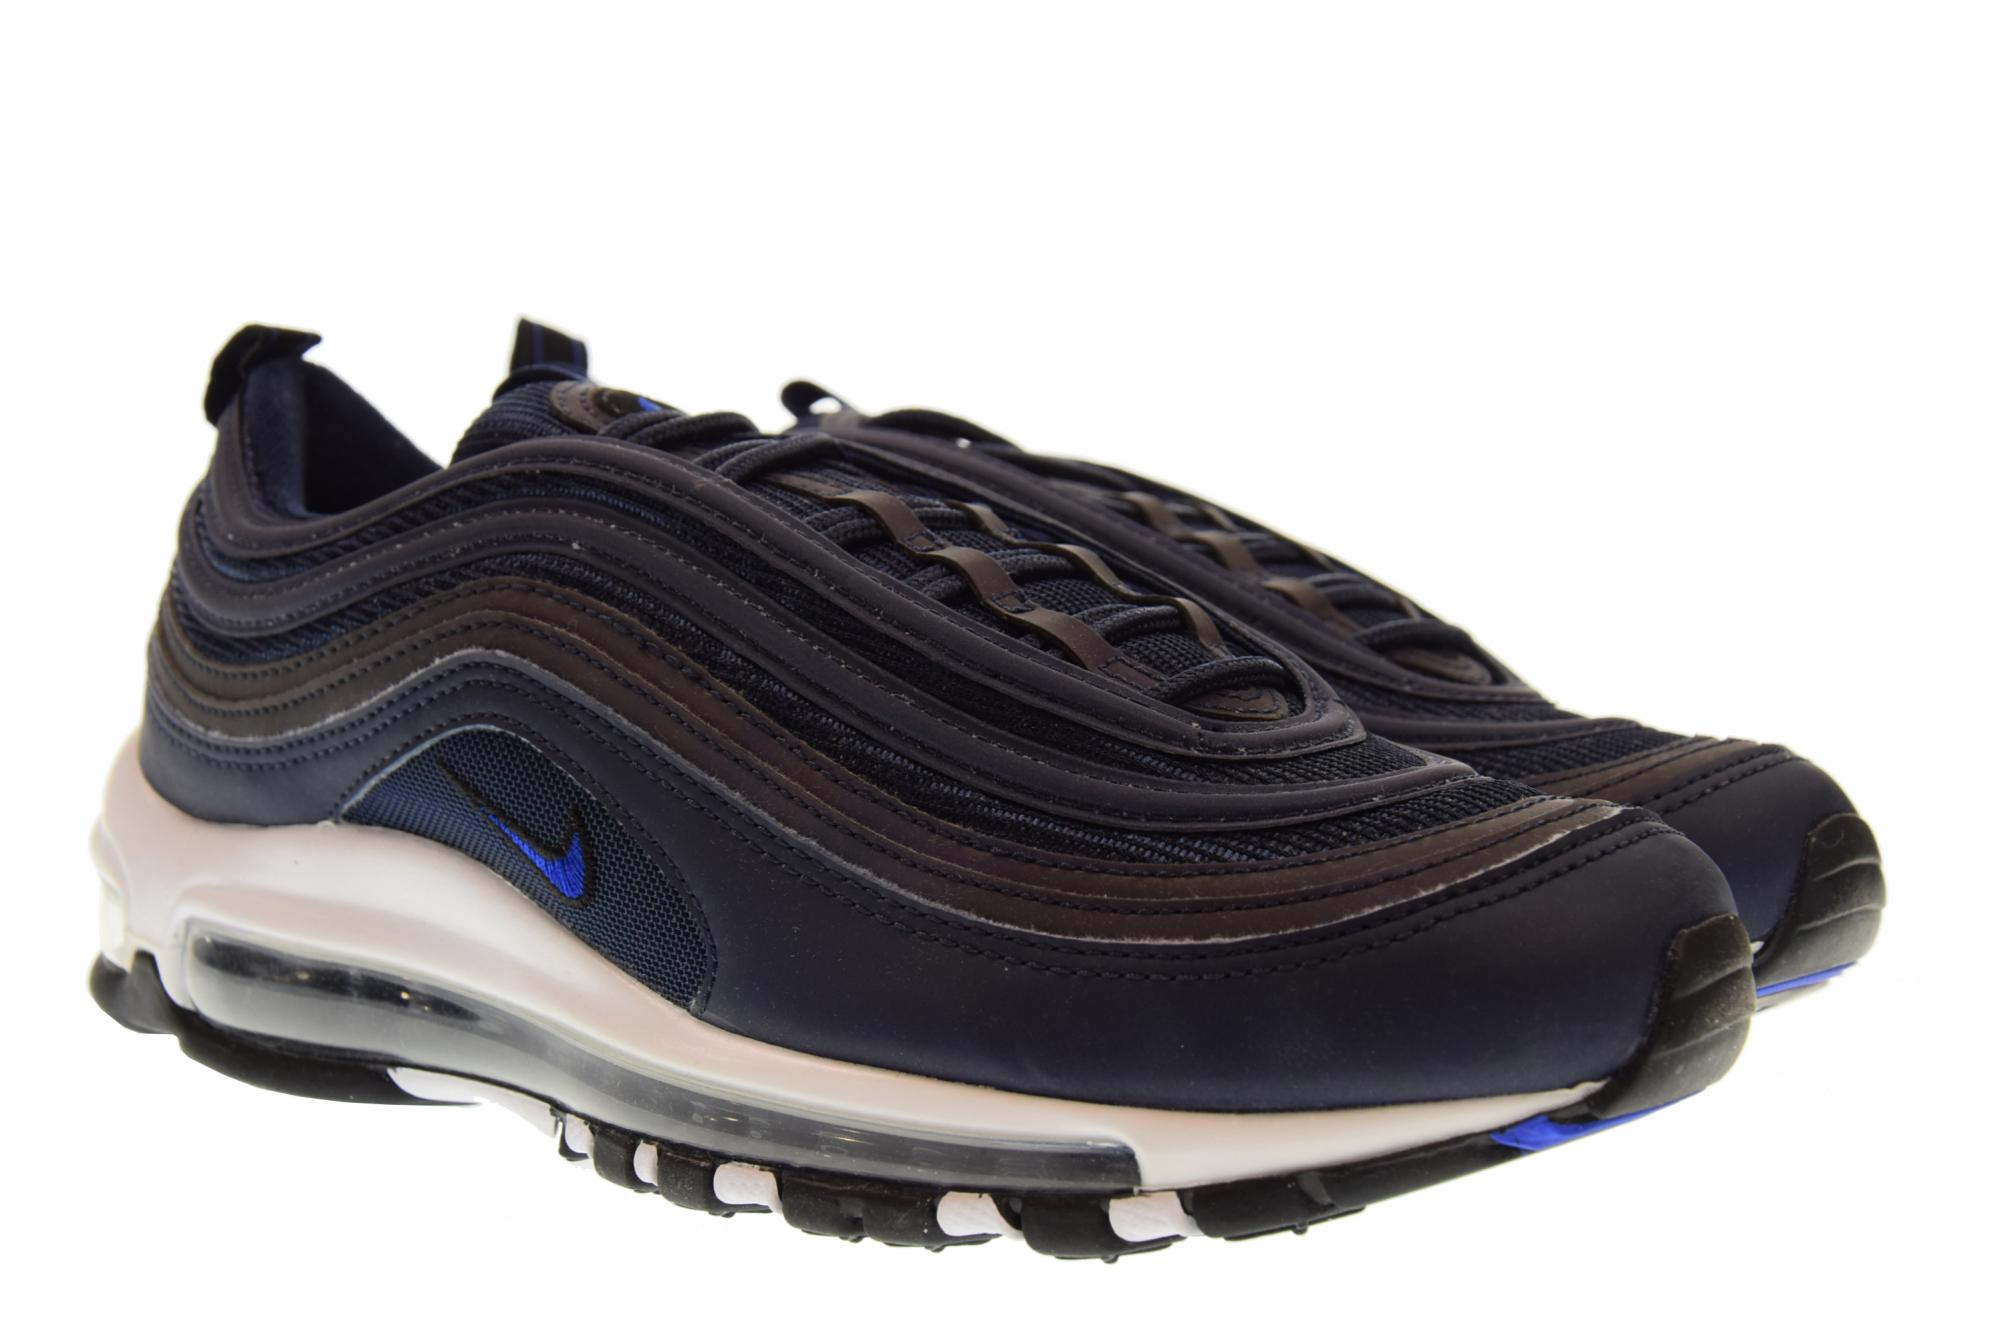 buy online d5be0 6ce33 402 Ebay P18 Scarpe Nike 921826 Sneakers Air 97 Basse Max Uo